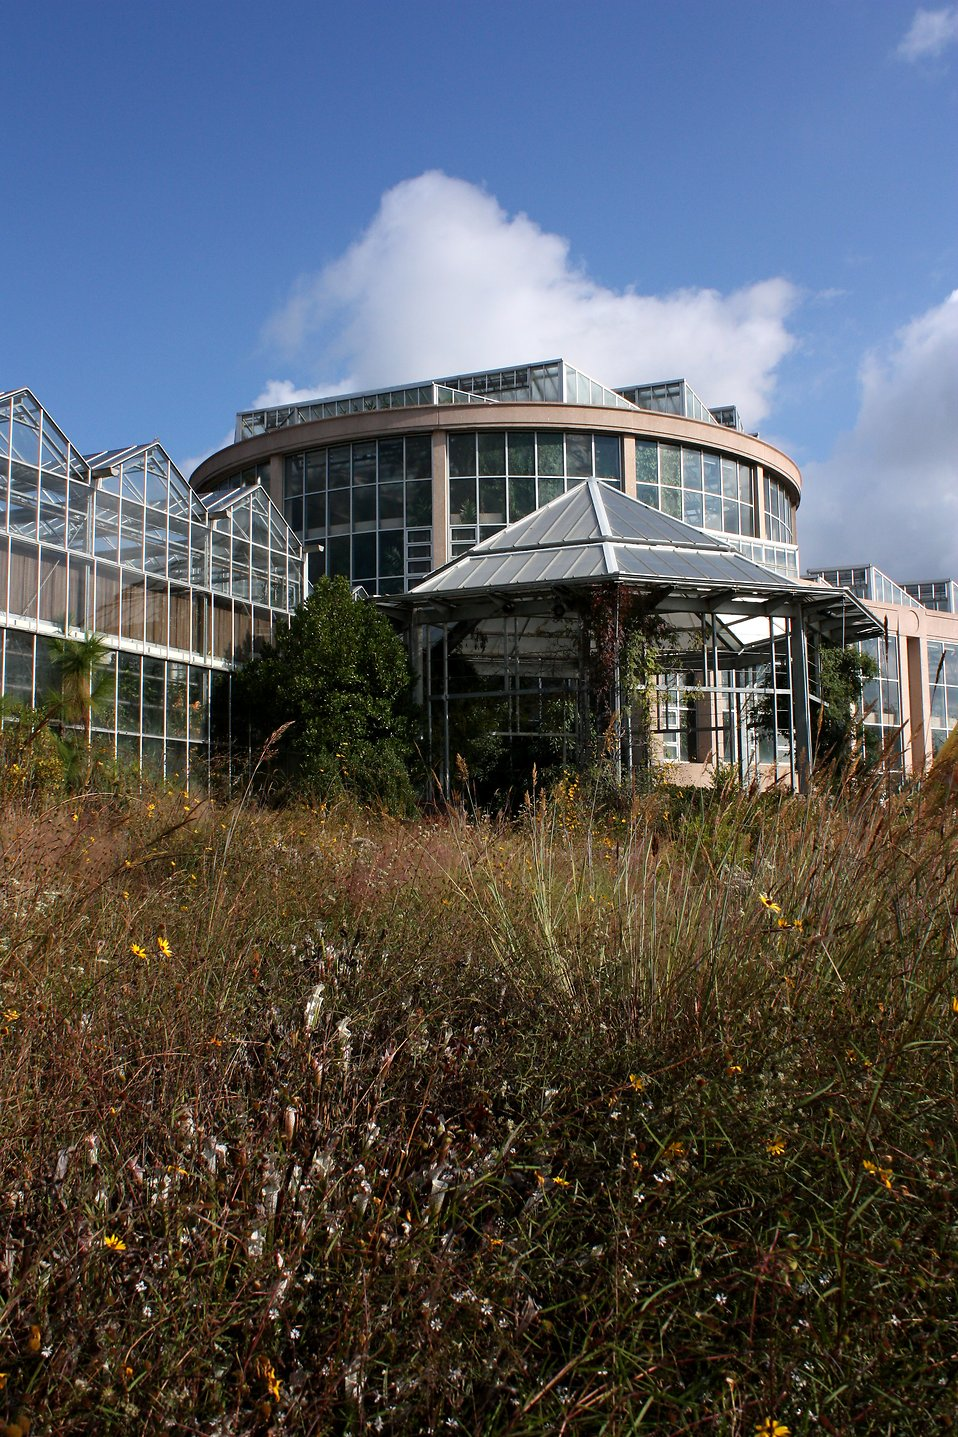 The Dorothy Chapman Fuqua Conservatory at the Atlanta Botanical Garden in Atlanta, Georgia : Free Stock Photo